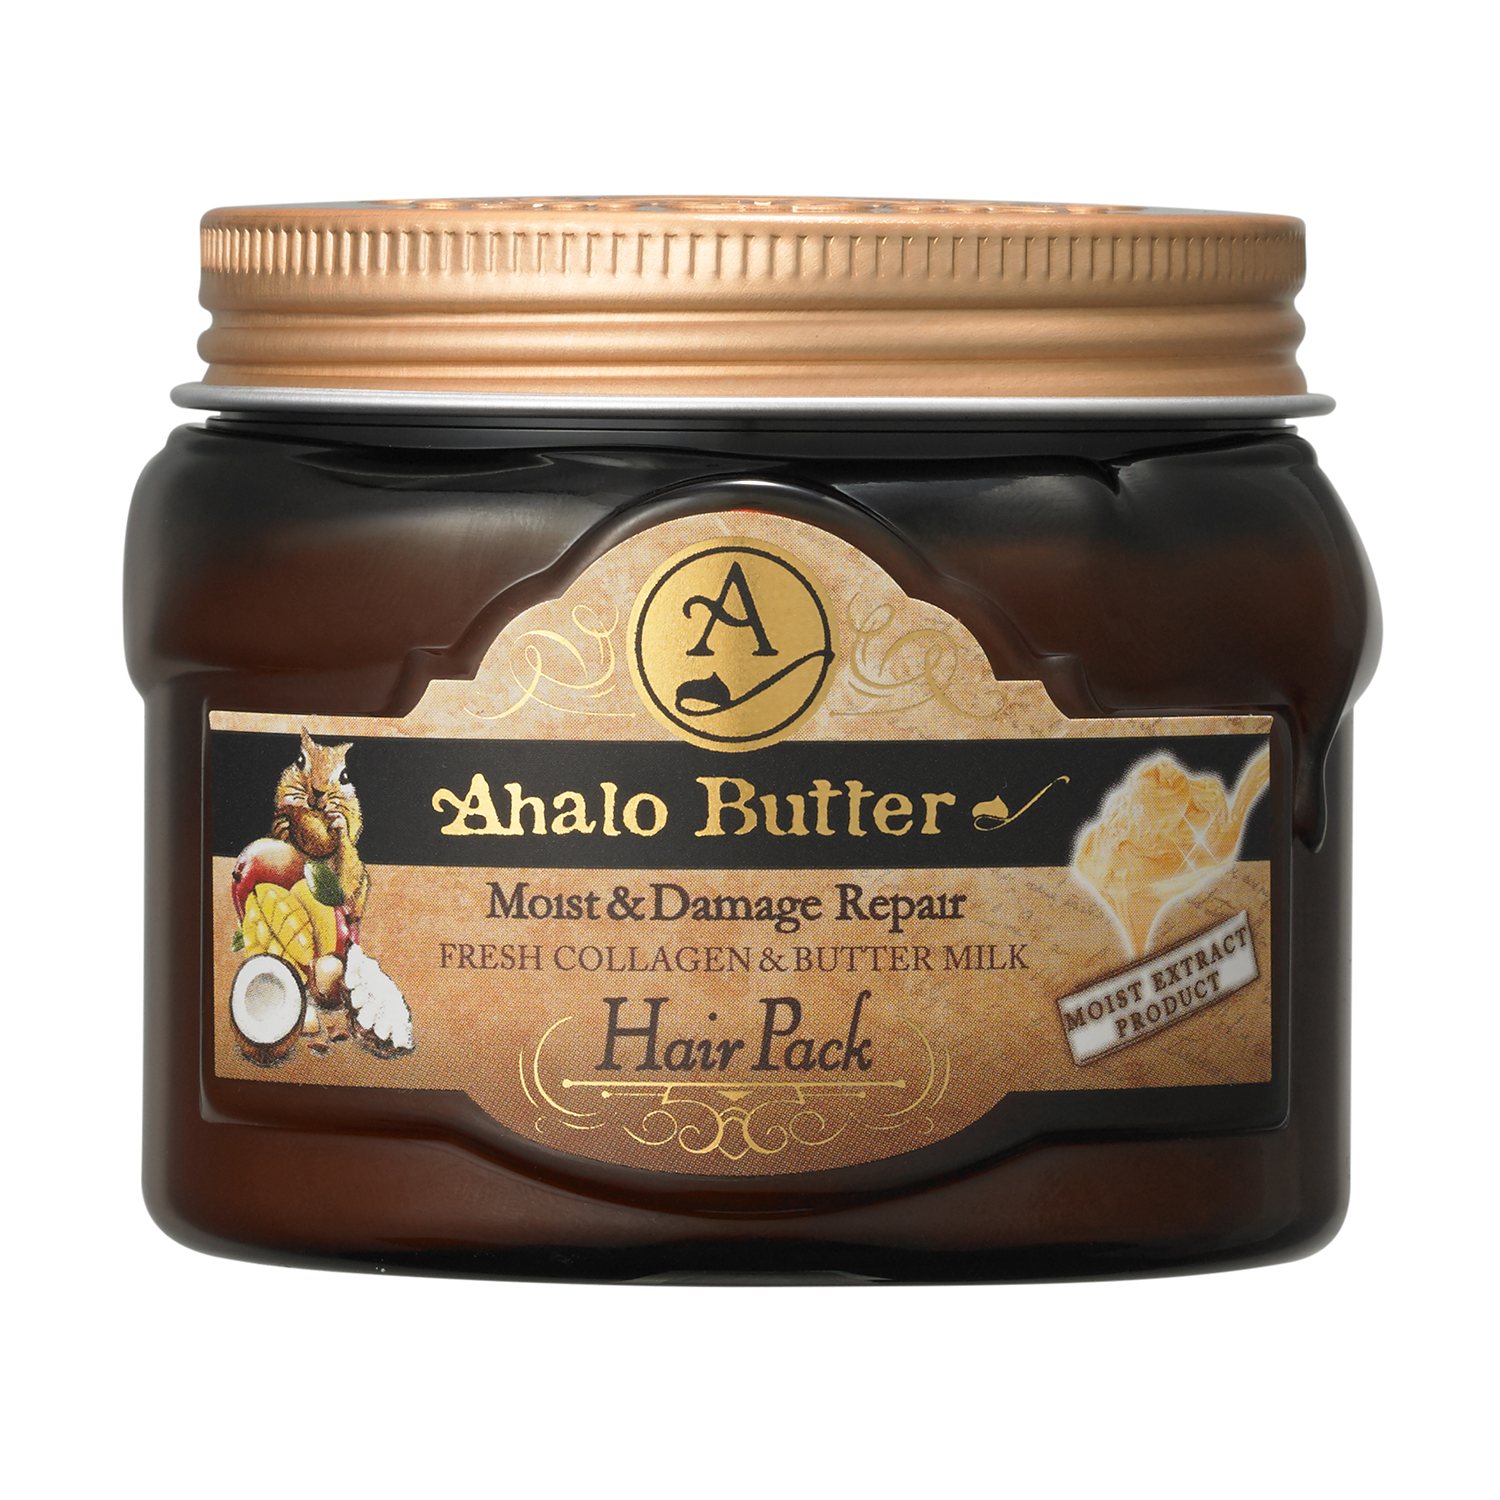 Ahalo Butter's richest, most concentrated formula with 6 different butters and 15 types of oils penetrates deep into the core to deliver intense hydration and damage repair with noticeable results after just one use.*Imported from JapanNet Weight: 150 g / 5.29 oz.